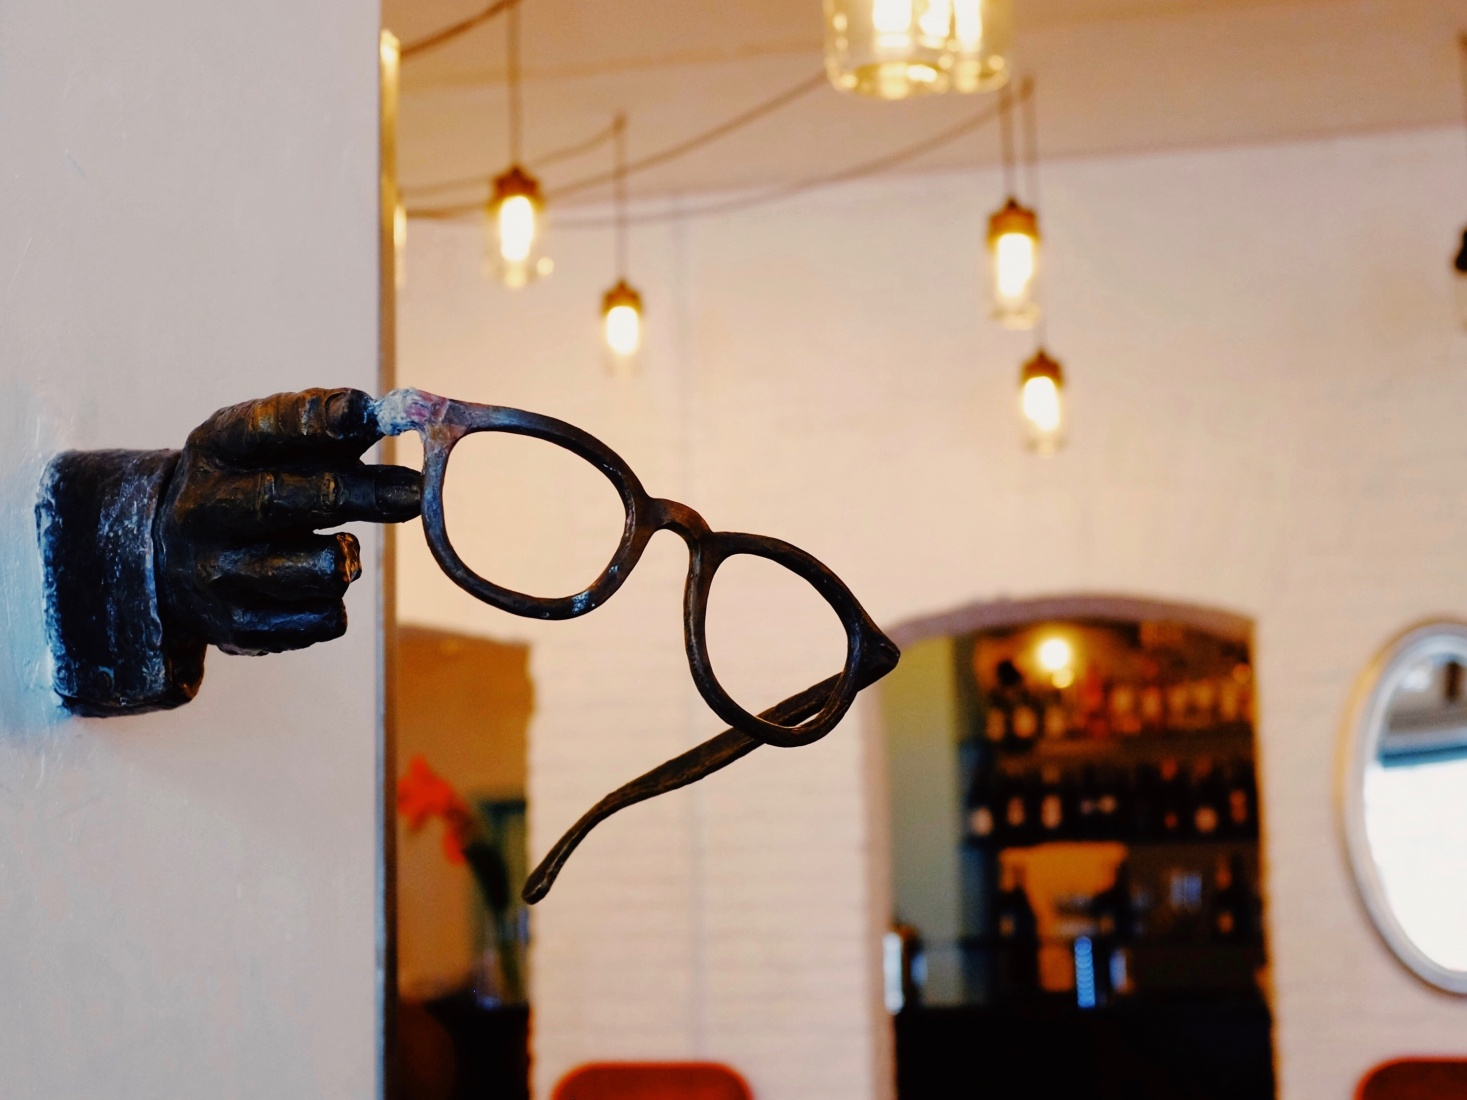 A statue monument of famous film director Woody Allen with hand and iconic glasses mounted on the wall of a downtown cinema in Kaliningrad, Russia. Allen was born Allan Stewart Konigsberg.